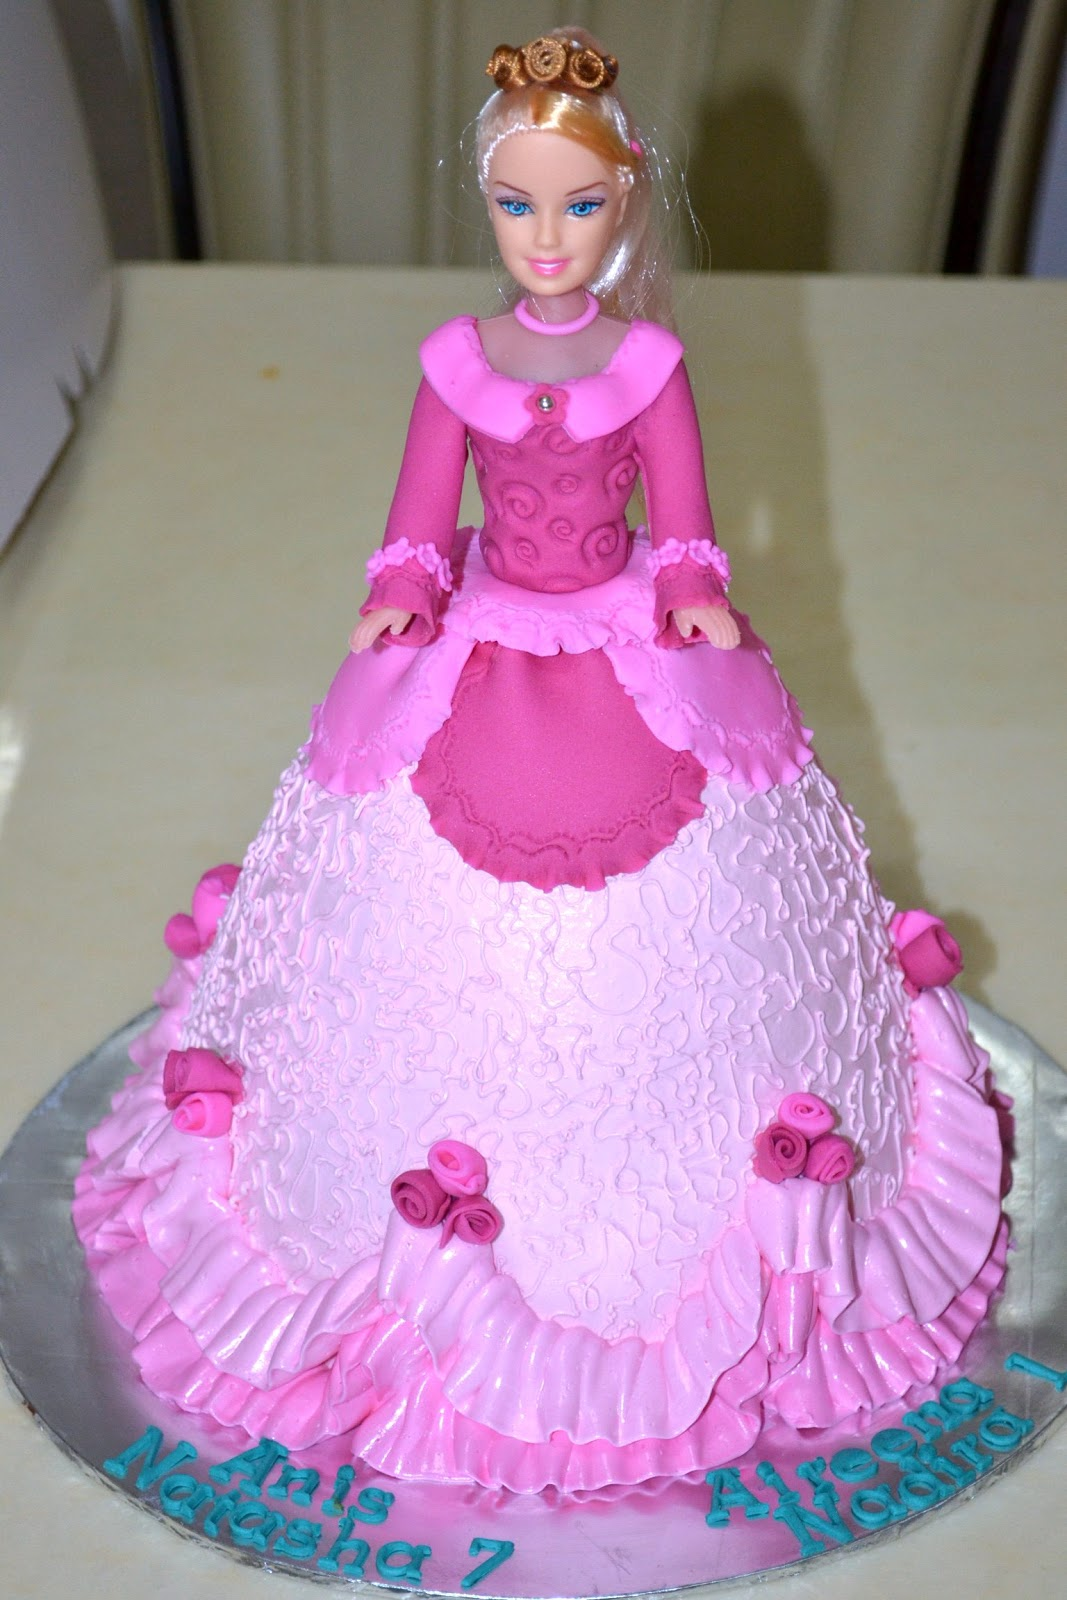 how to make a princess cake with a doll